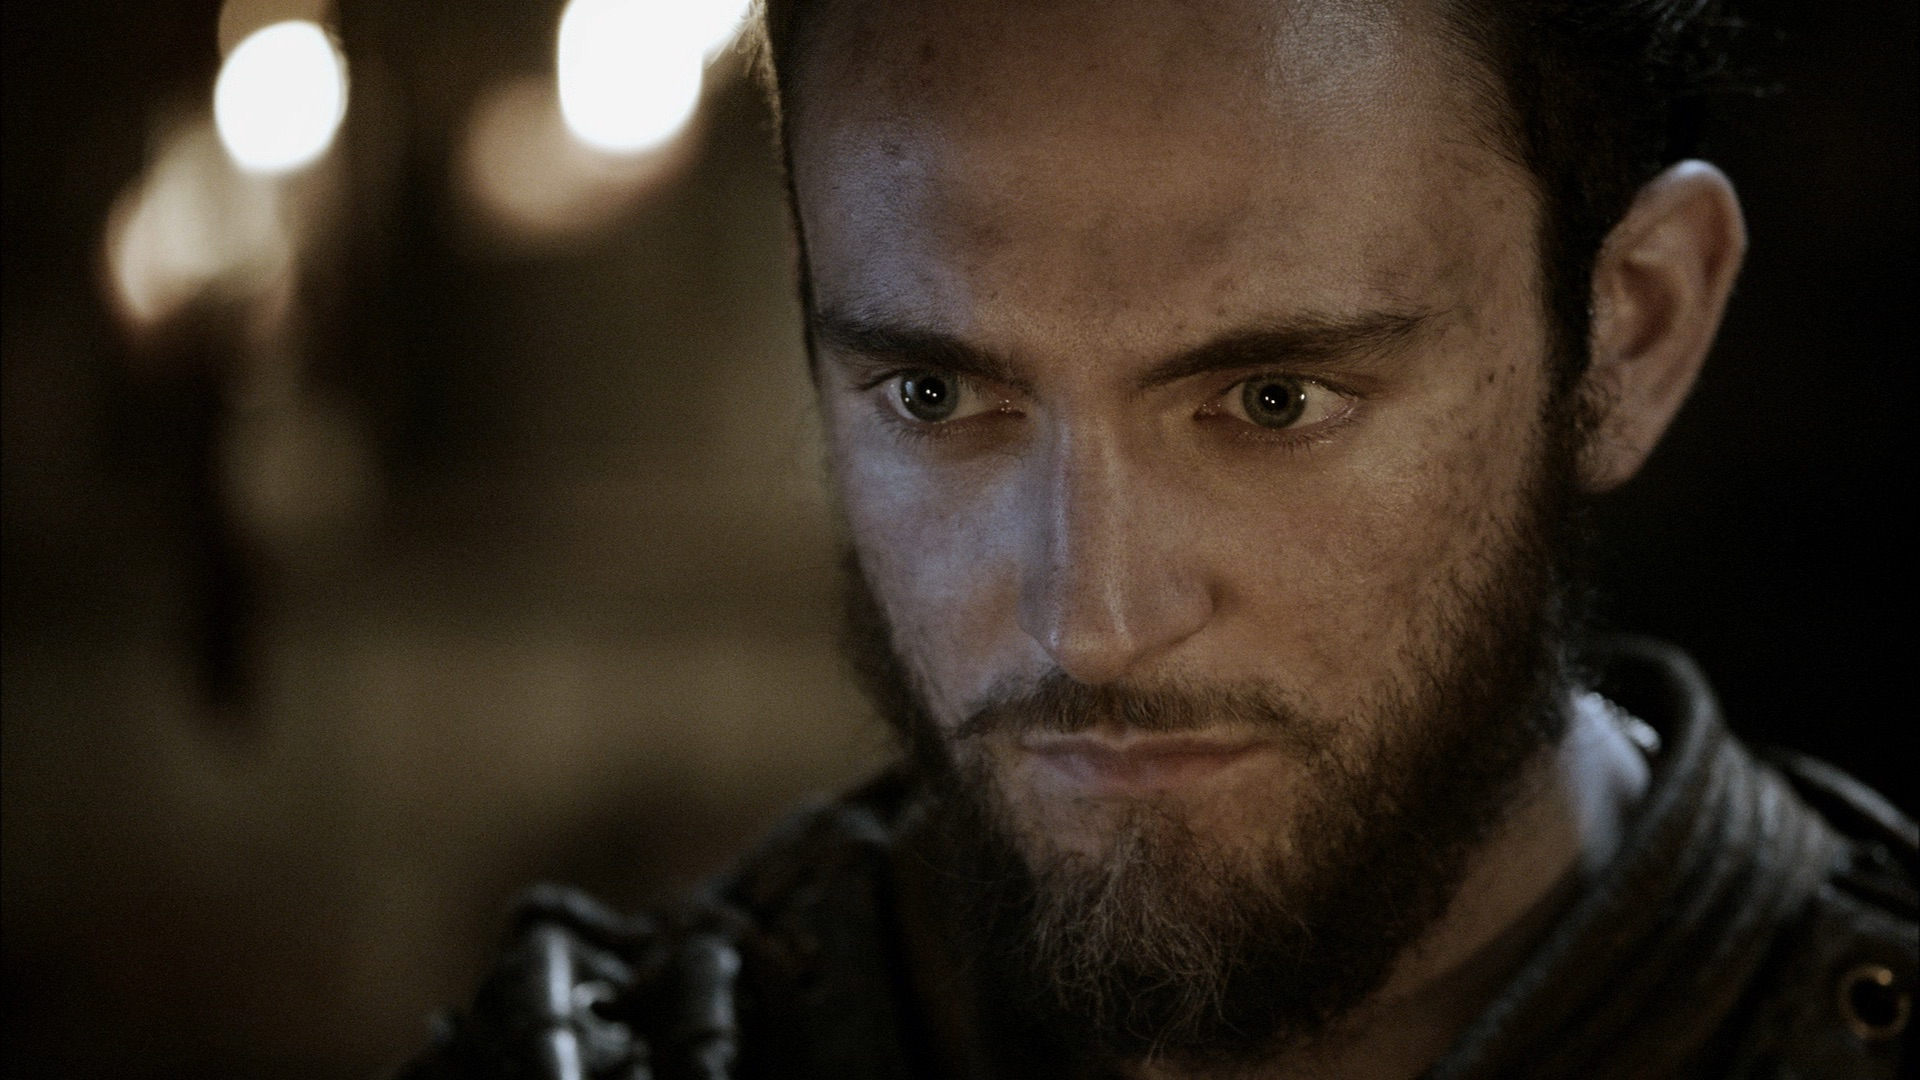 athelstan from history channel's vikings